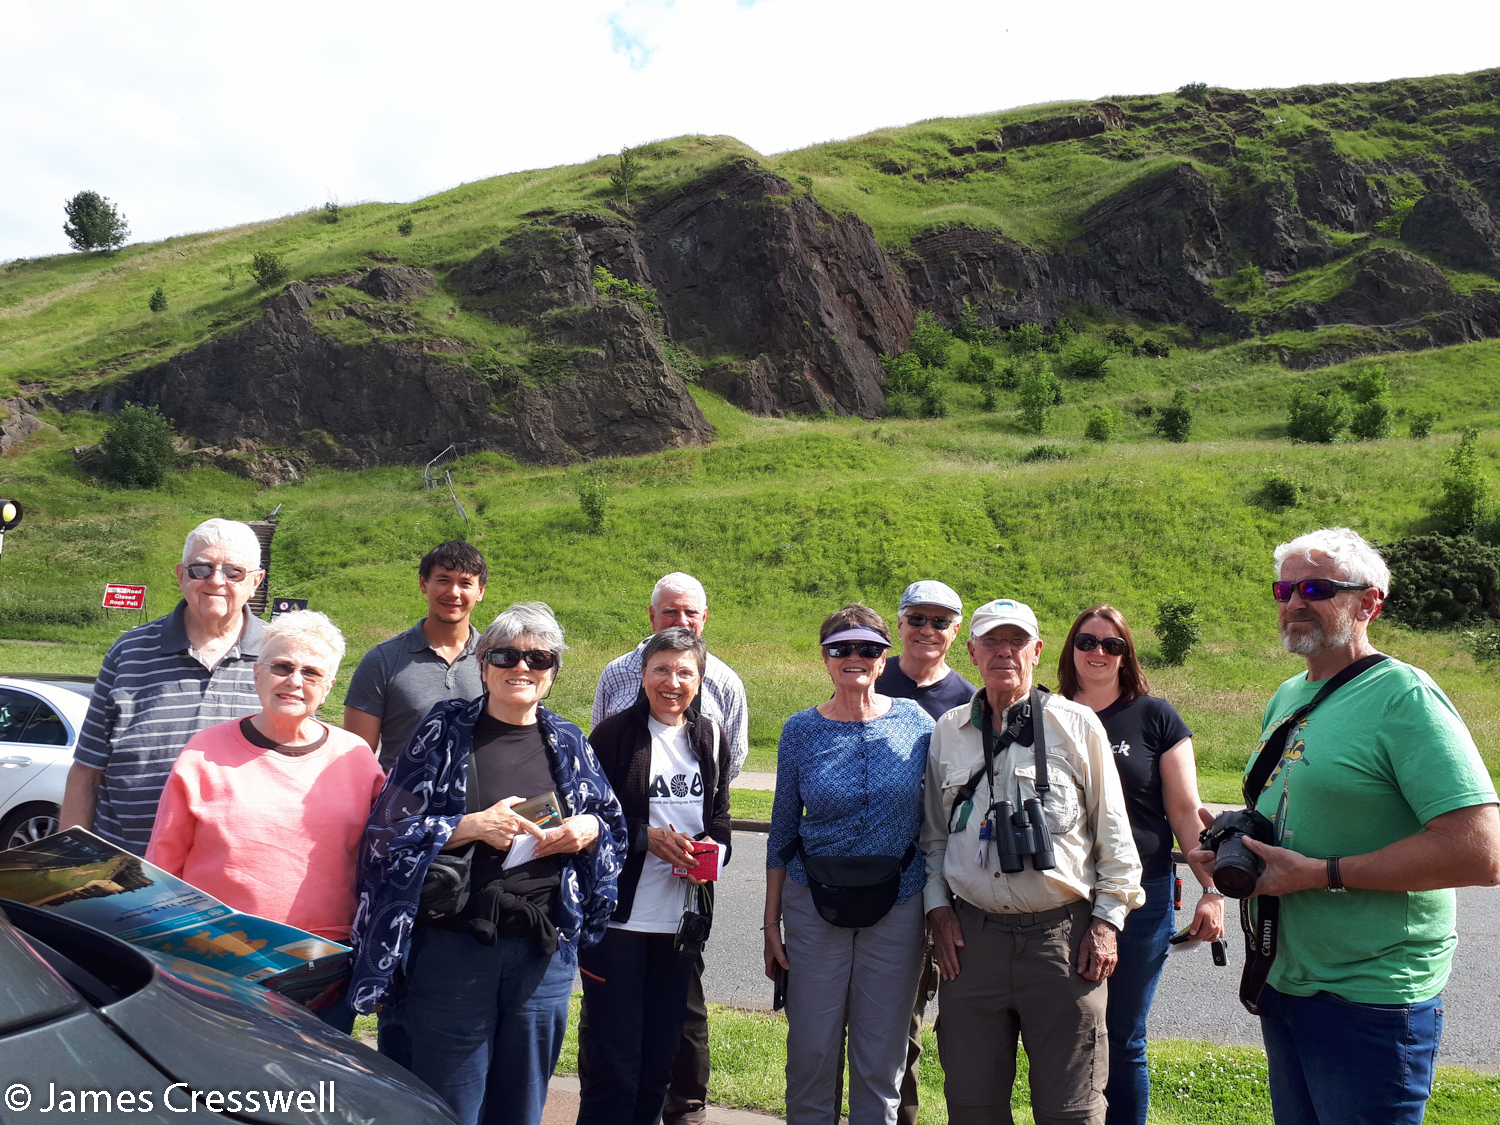 The GeoWorld Travel group in Holyrood Park with the Salisbury Crags sill of the Arthur's Seat volcano in the background